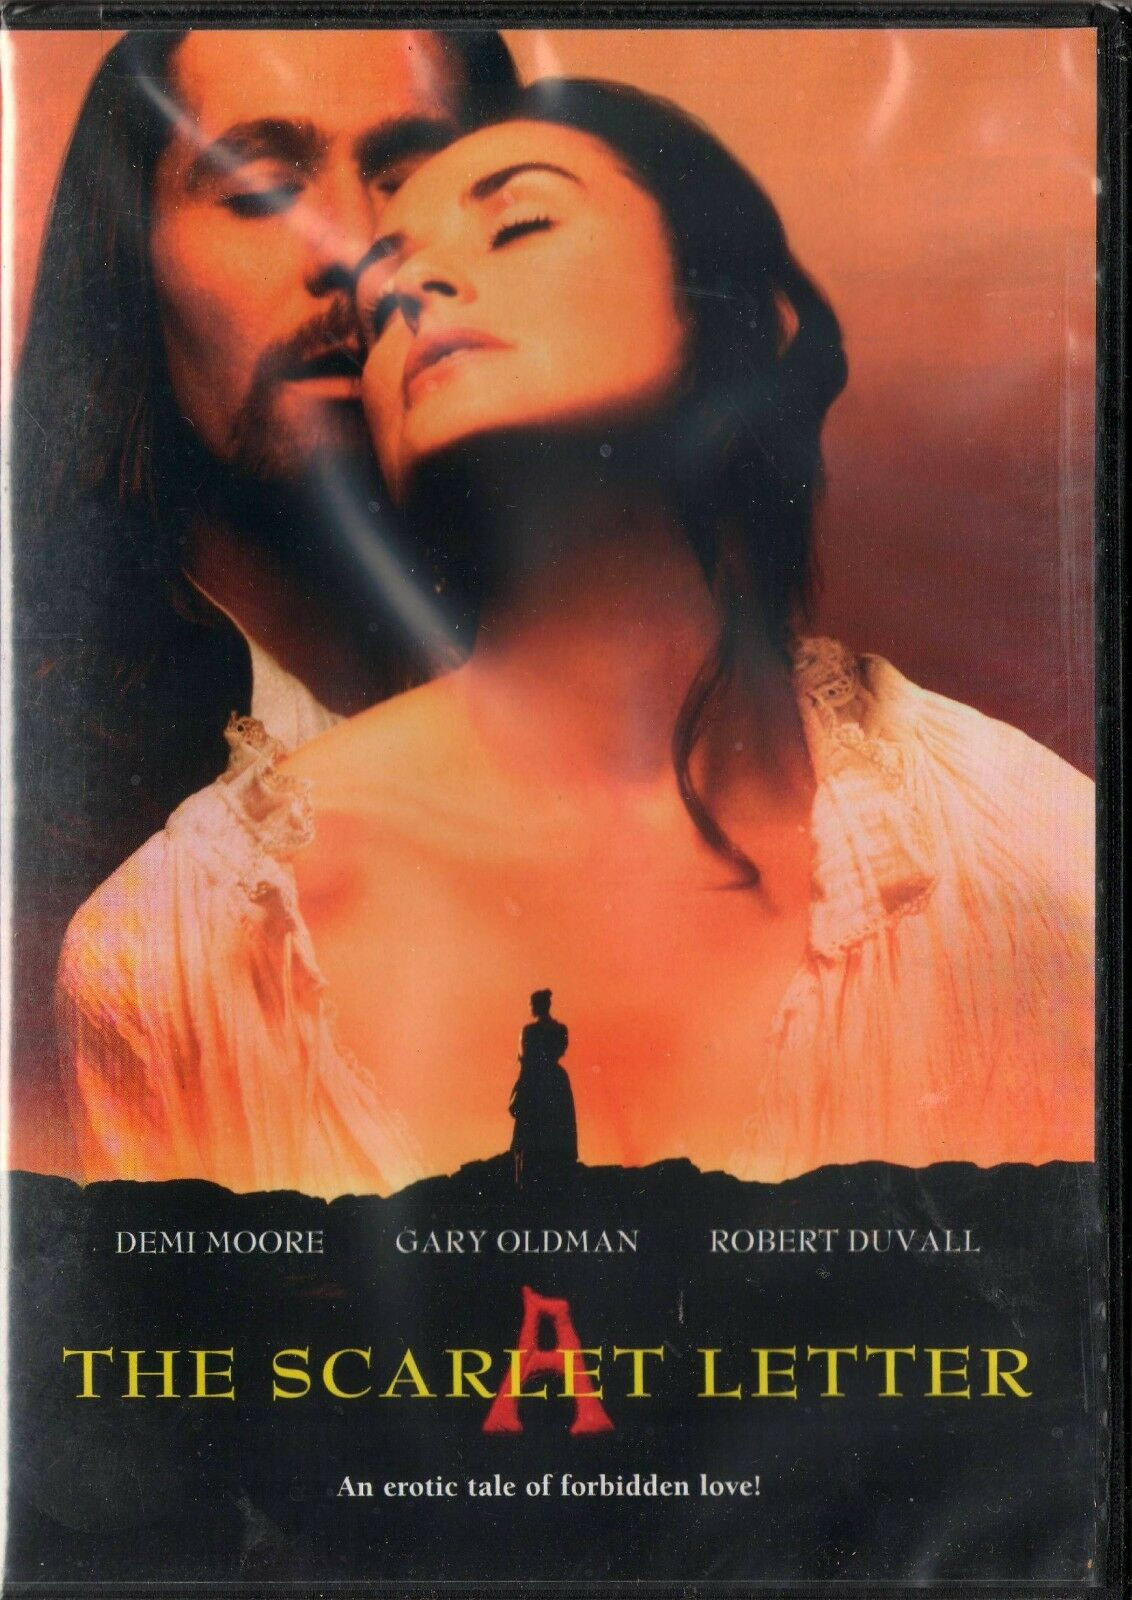 The scarlet letter dvd 2002 demi moore gary oldman rated r ebay picture 1 of 1 madrichimfo Images